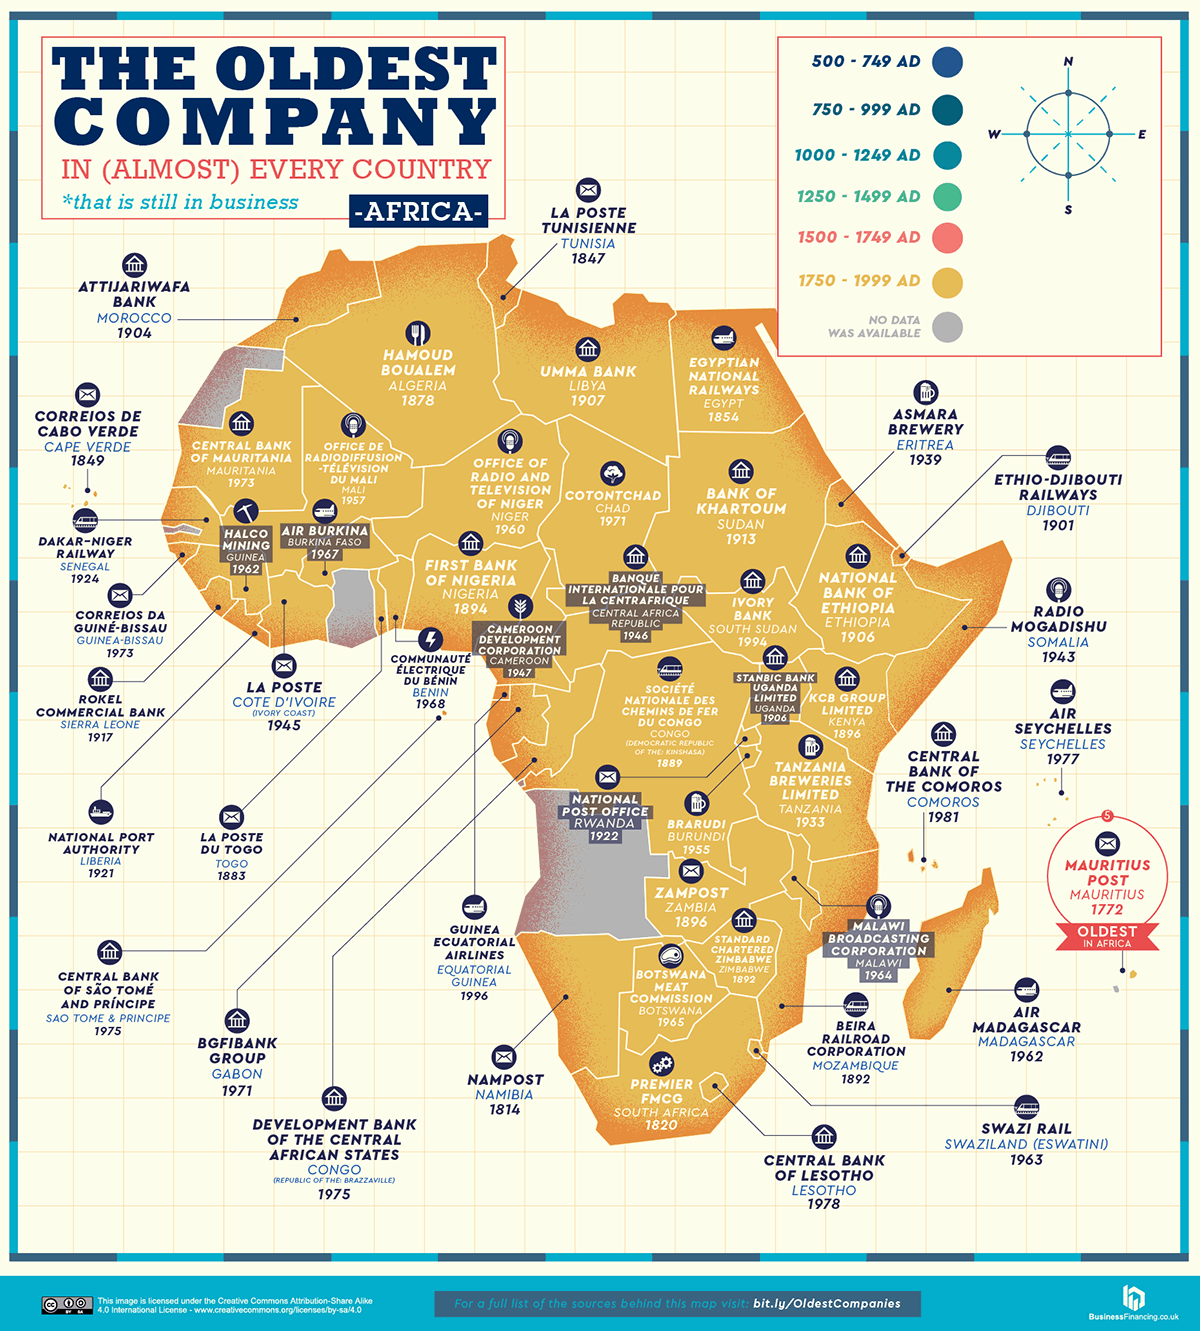 oldest company in every country map 3 A World Map of the Oldest Company in Every Country (Still in Business)